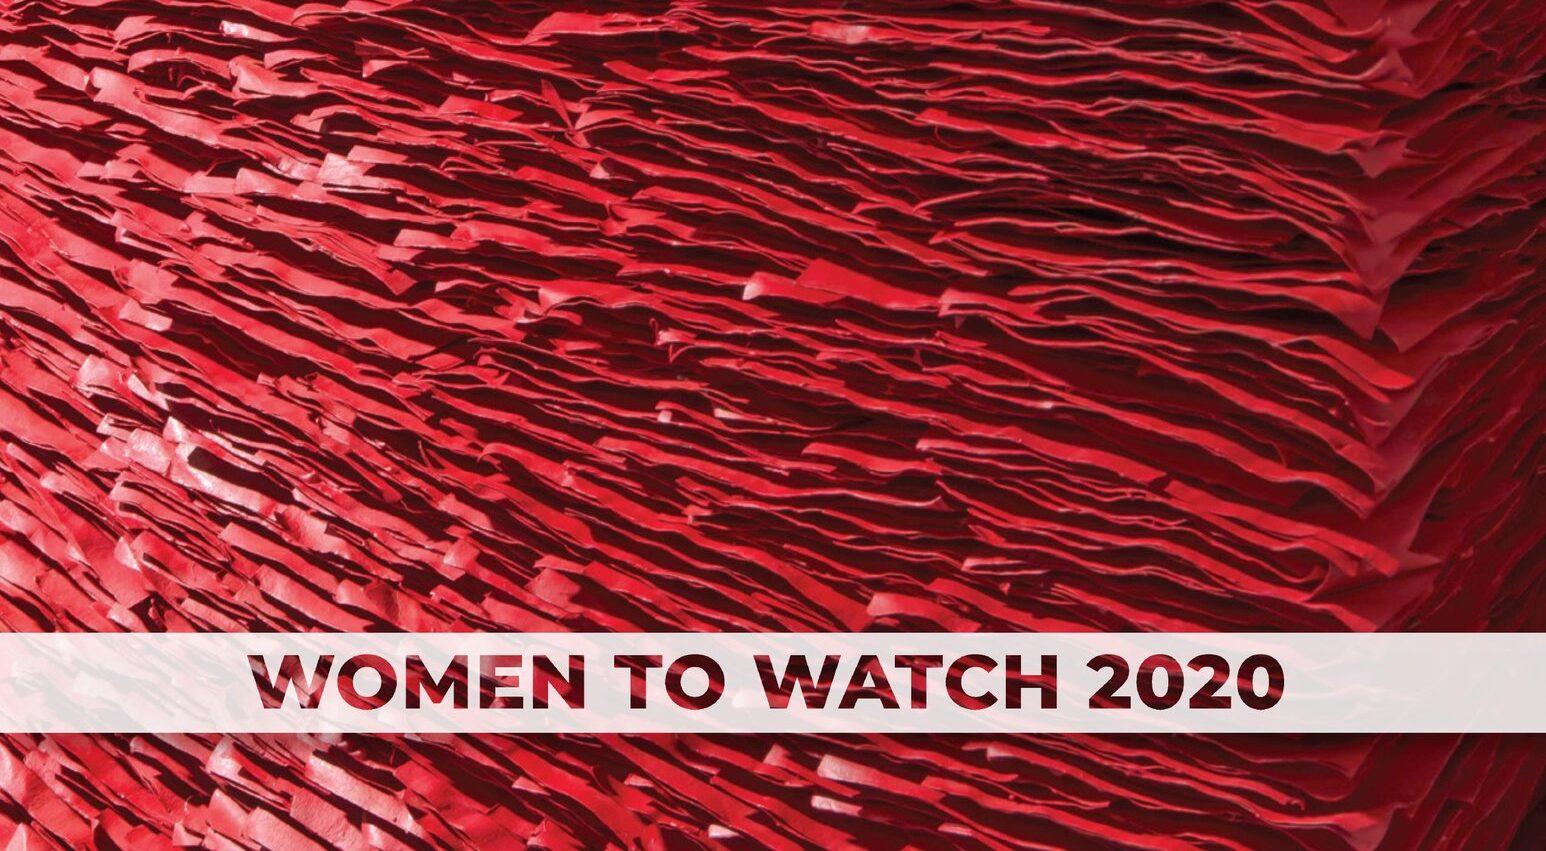 Book cover features bright red stacks of crinkled paper radiating from the left side. The books title 'Paper Routes Women to Watch 2020' is in white text.